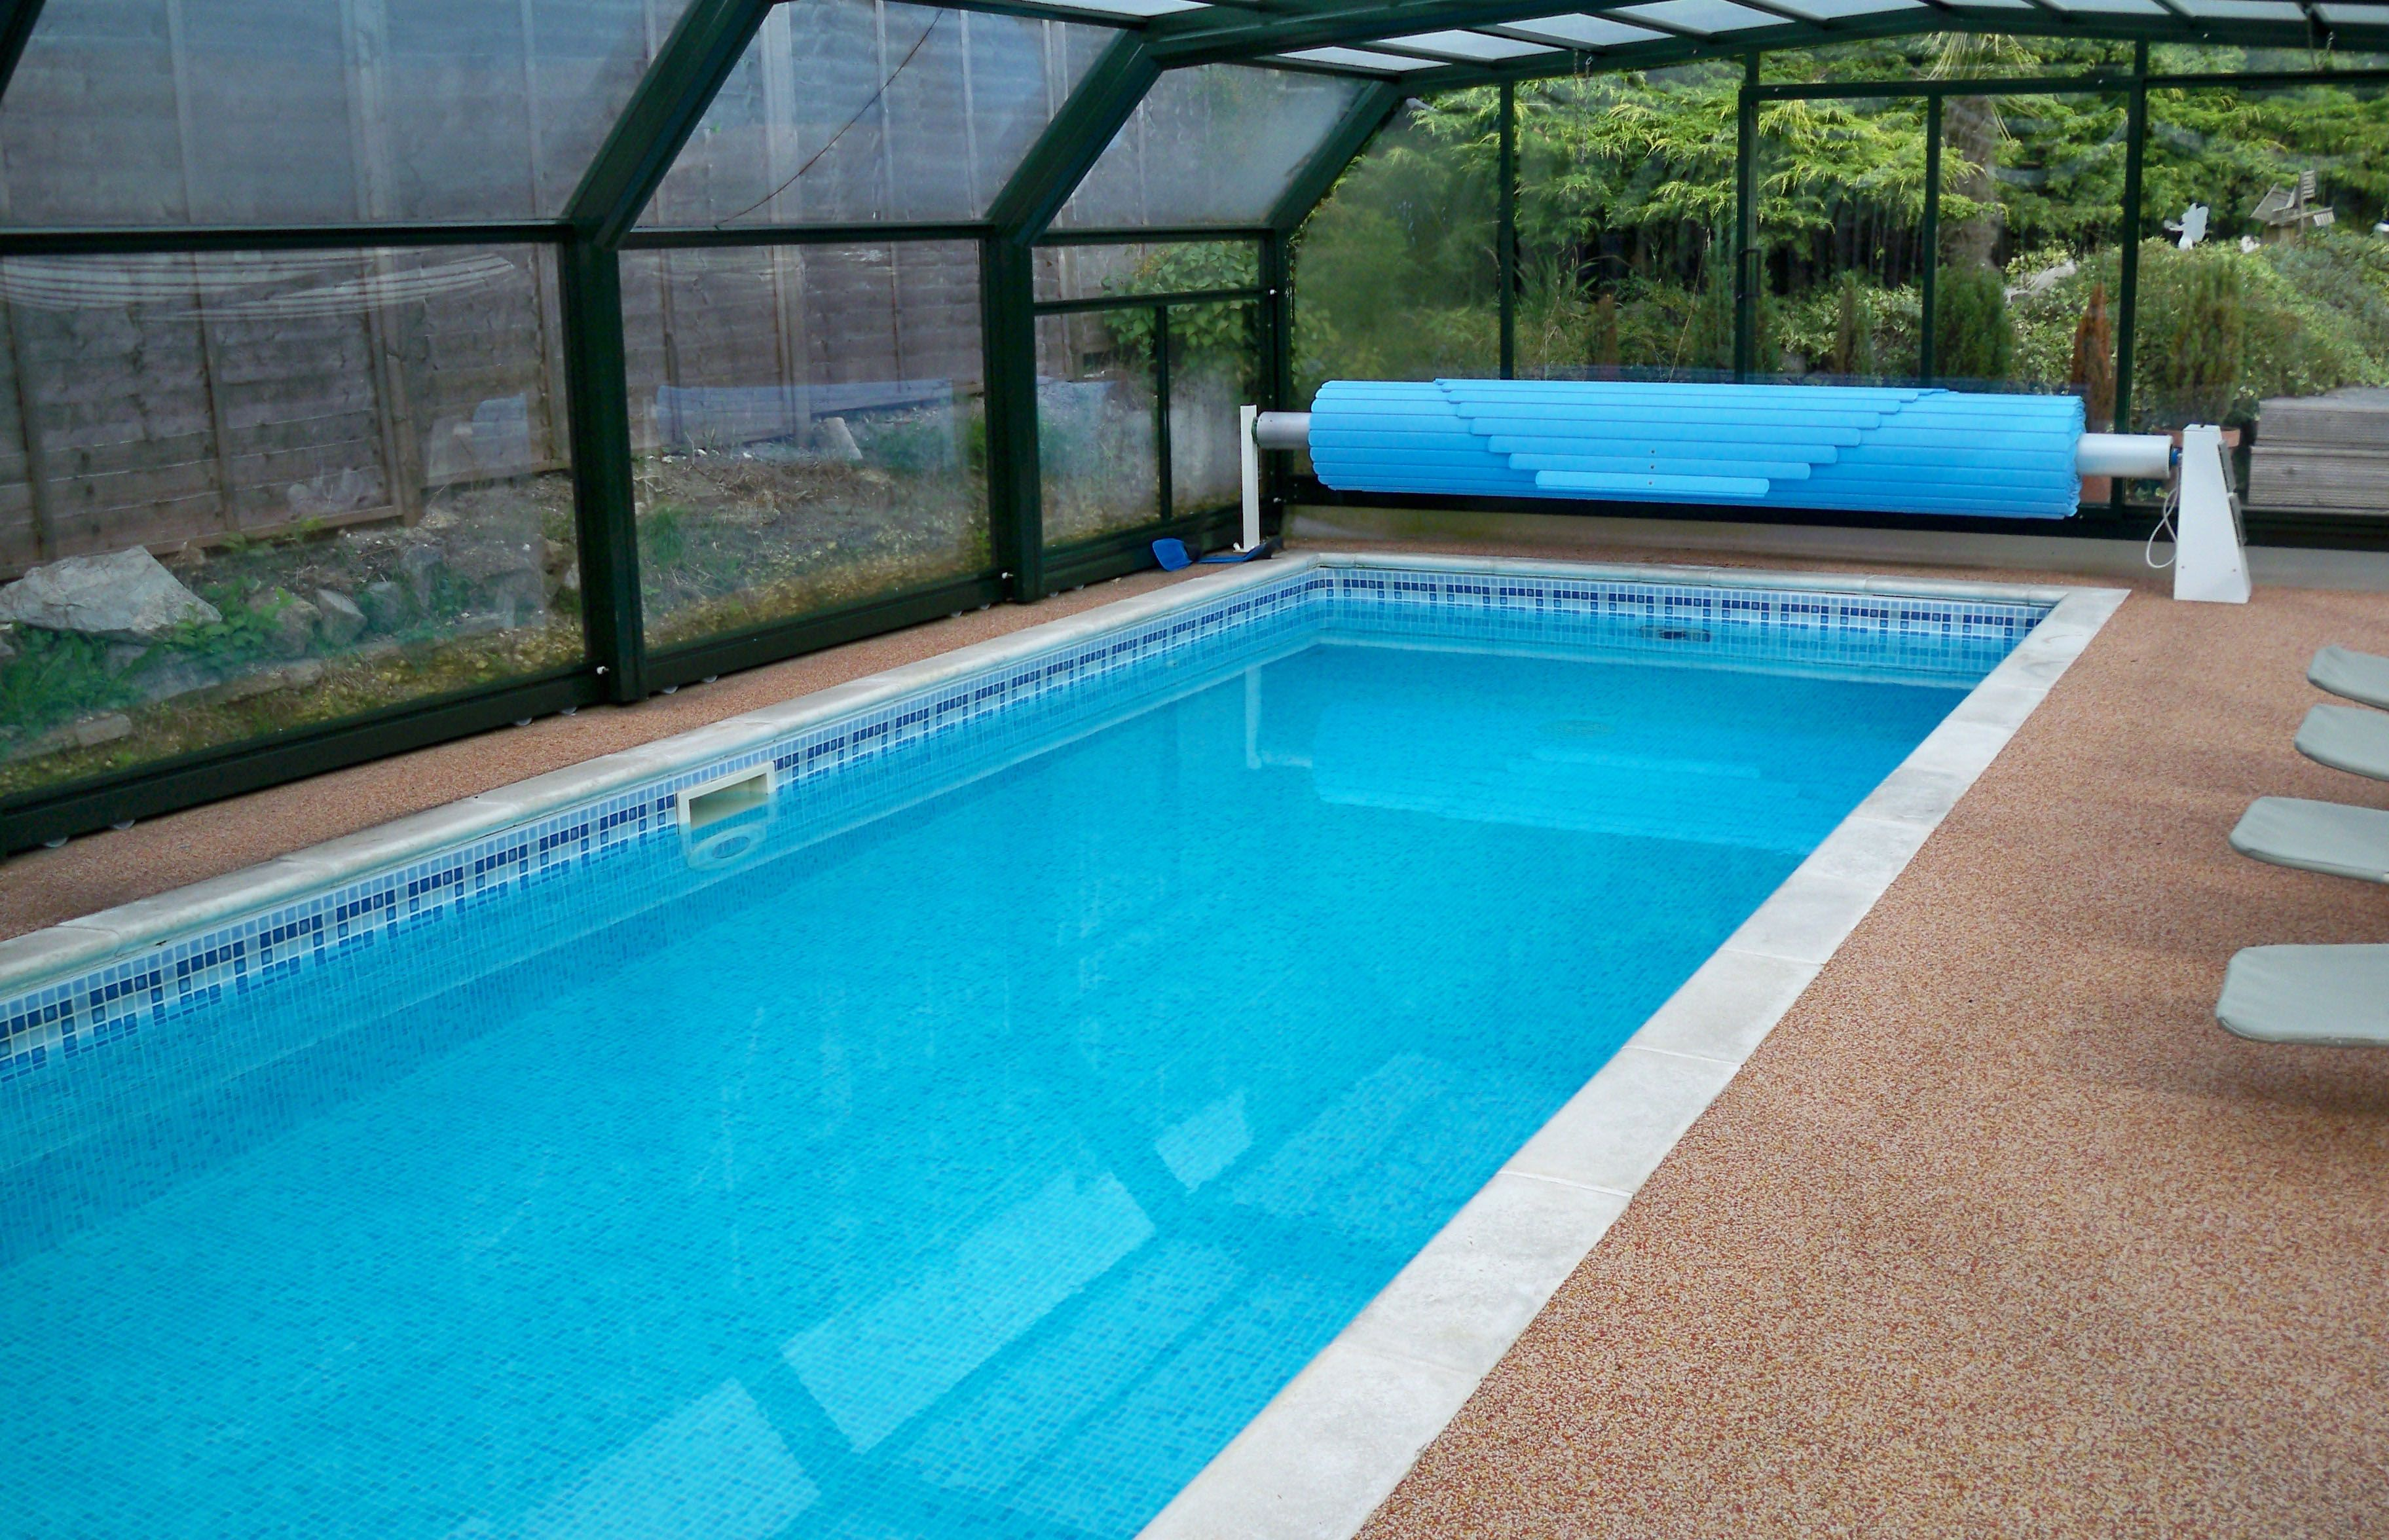 Pin modern pool design on pinterest - Most Popular Small Modern Pool Collection